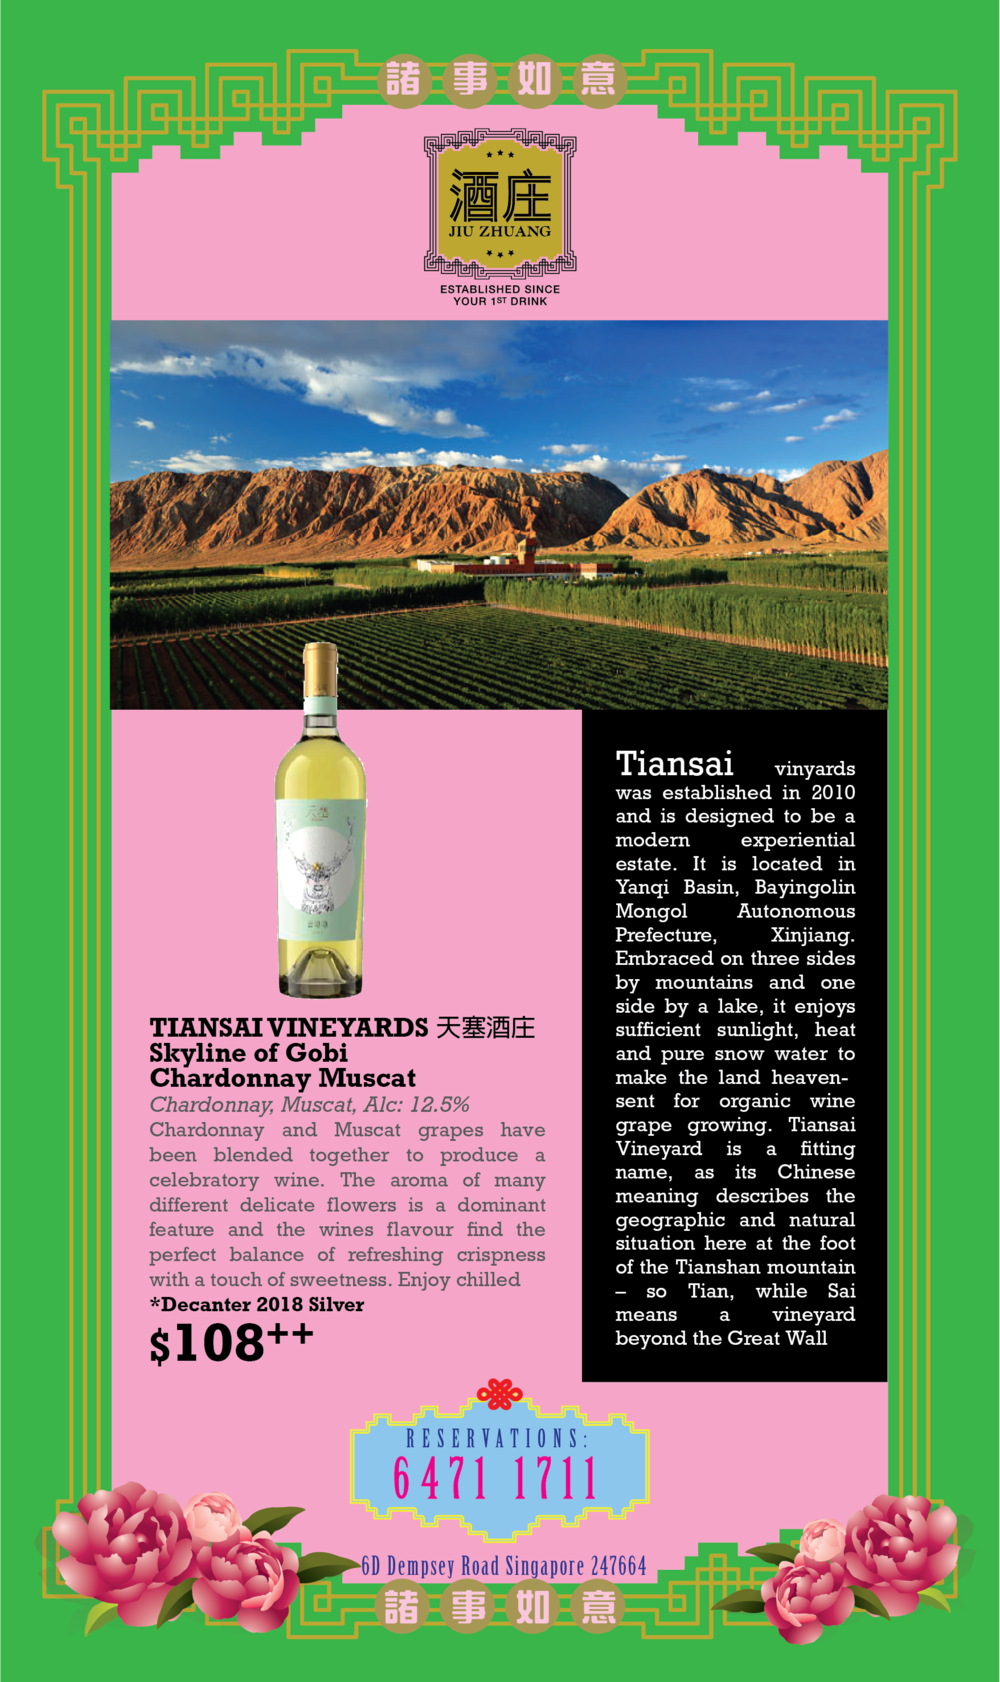 CNY_2019_Tiansai_vinyards